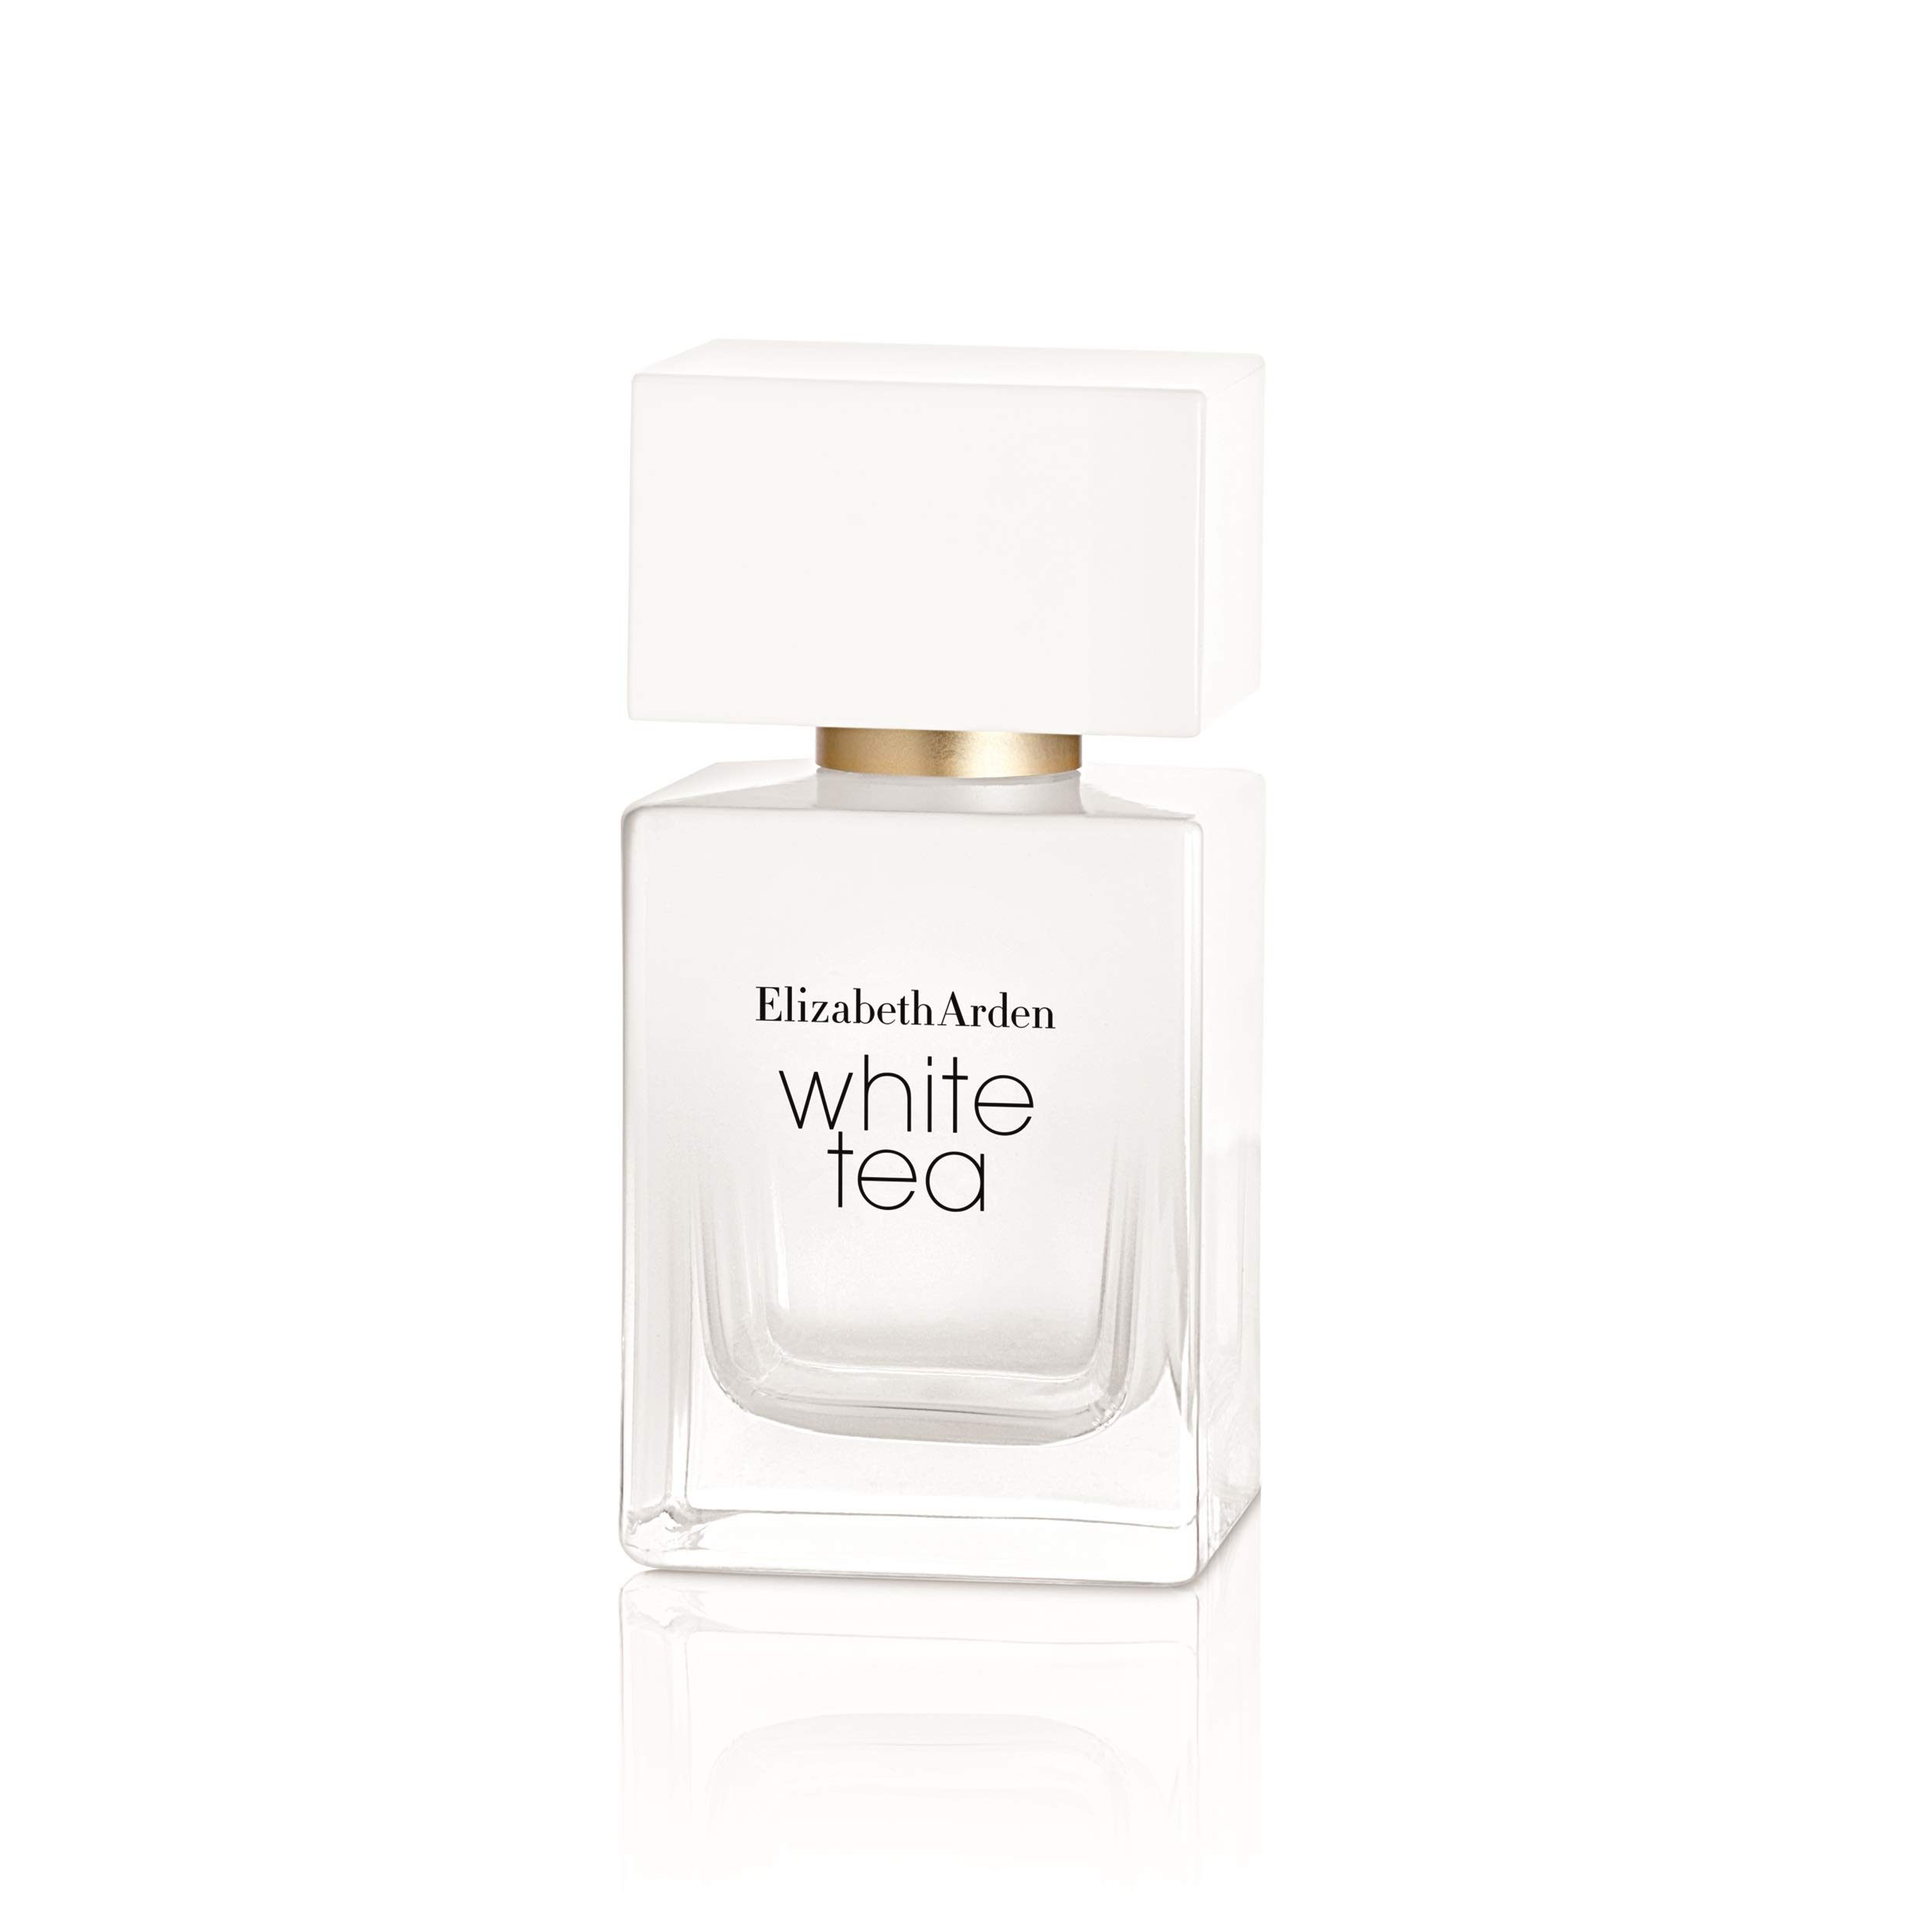 Elizabeth Arden White Tea Eau De Toilette Spray, 1 oz.